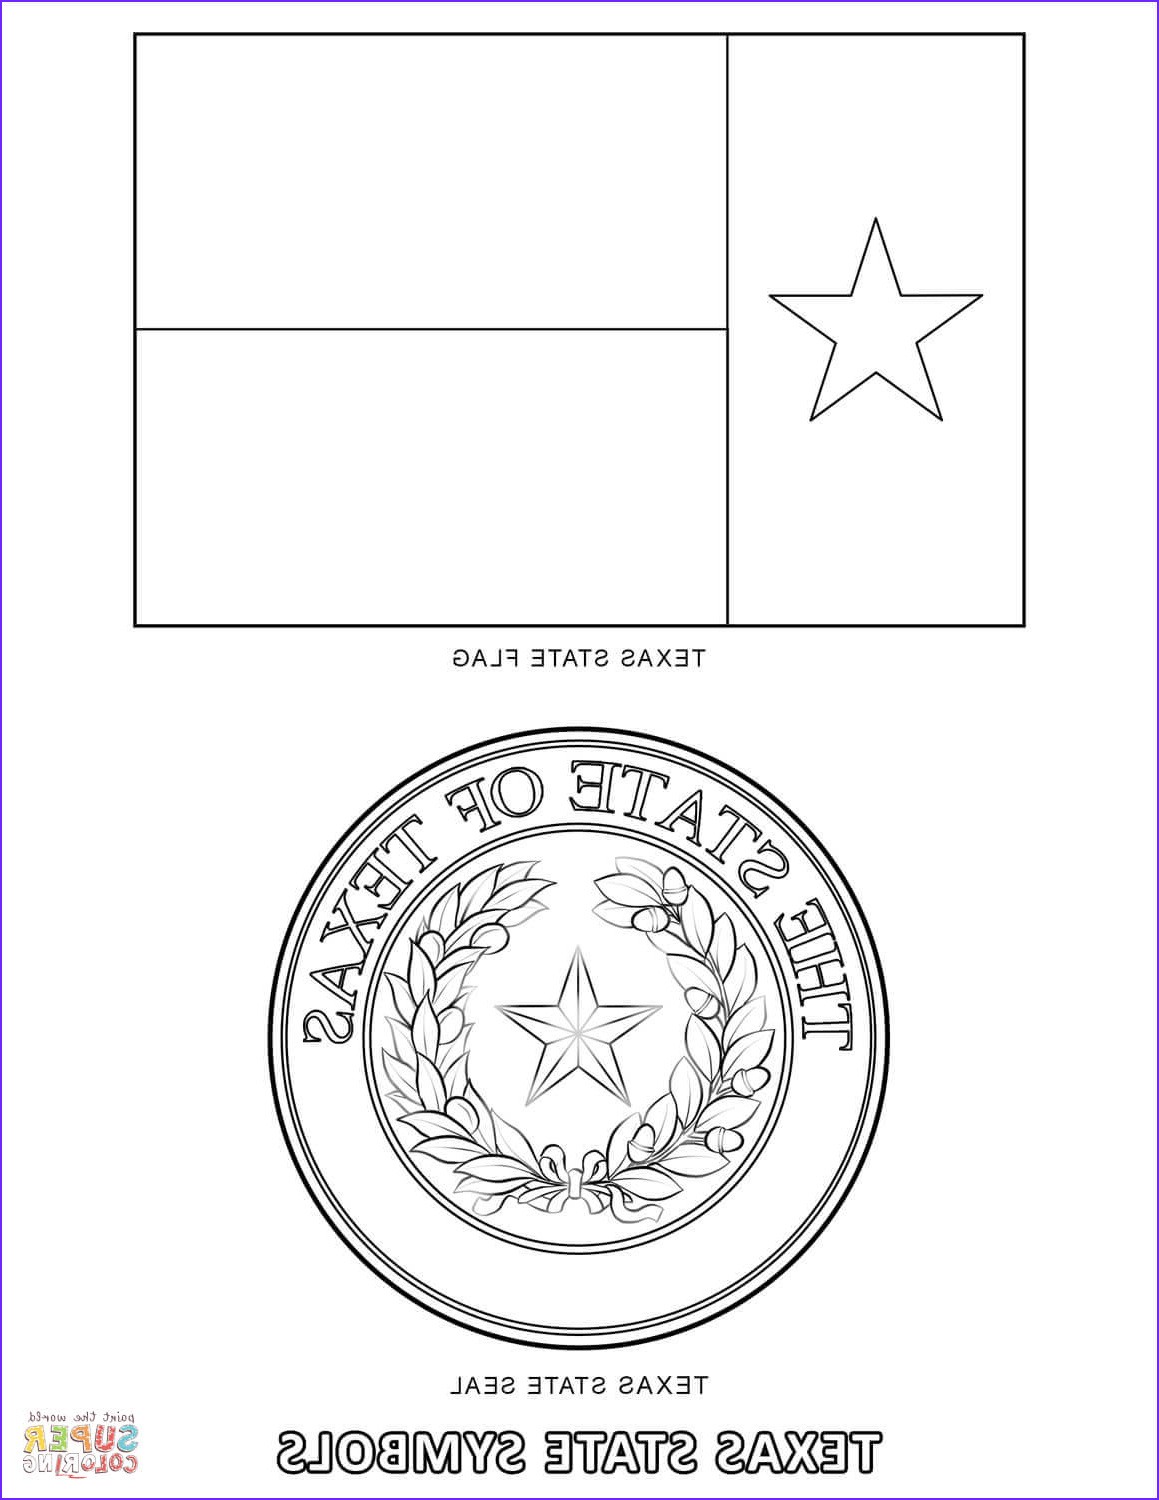 Texas Flag Coloring Page Inspirational Images Texas State Symbols Coloring Page